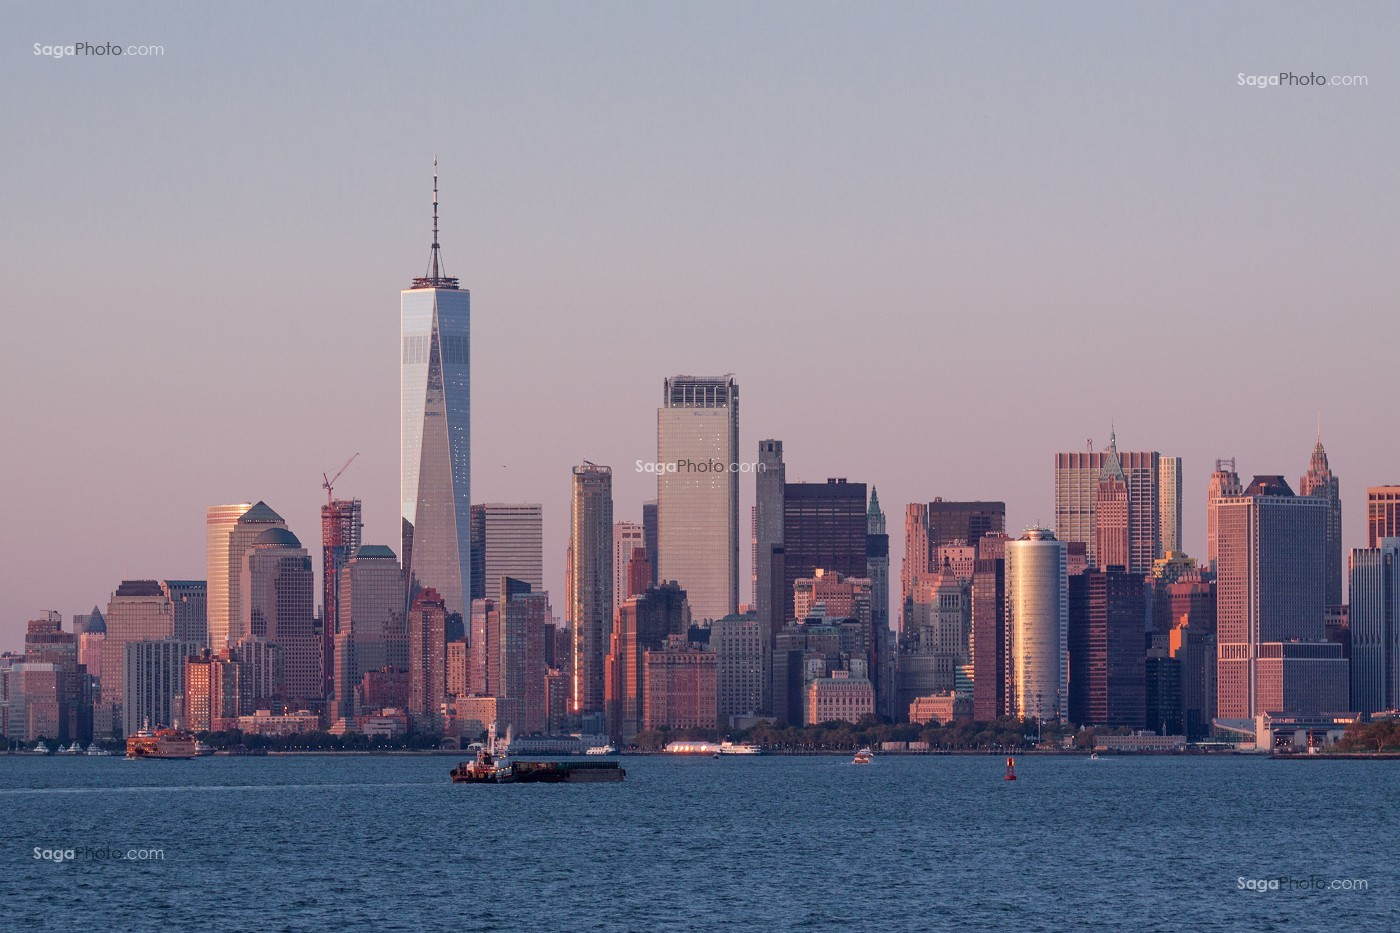 NEW YORK CITY, ETATS UNIS, USA, AMERIQUE DU NORD